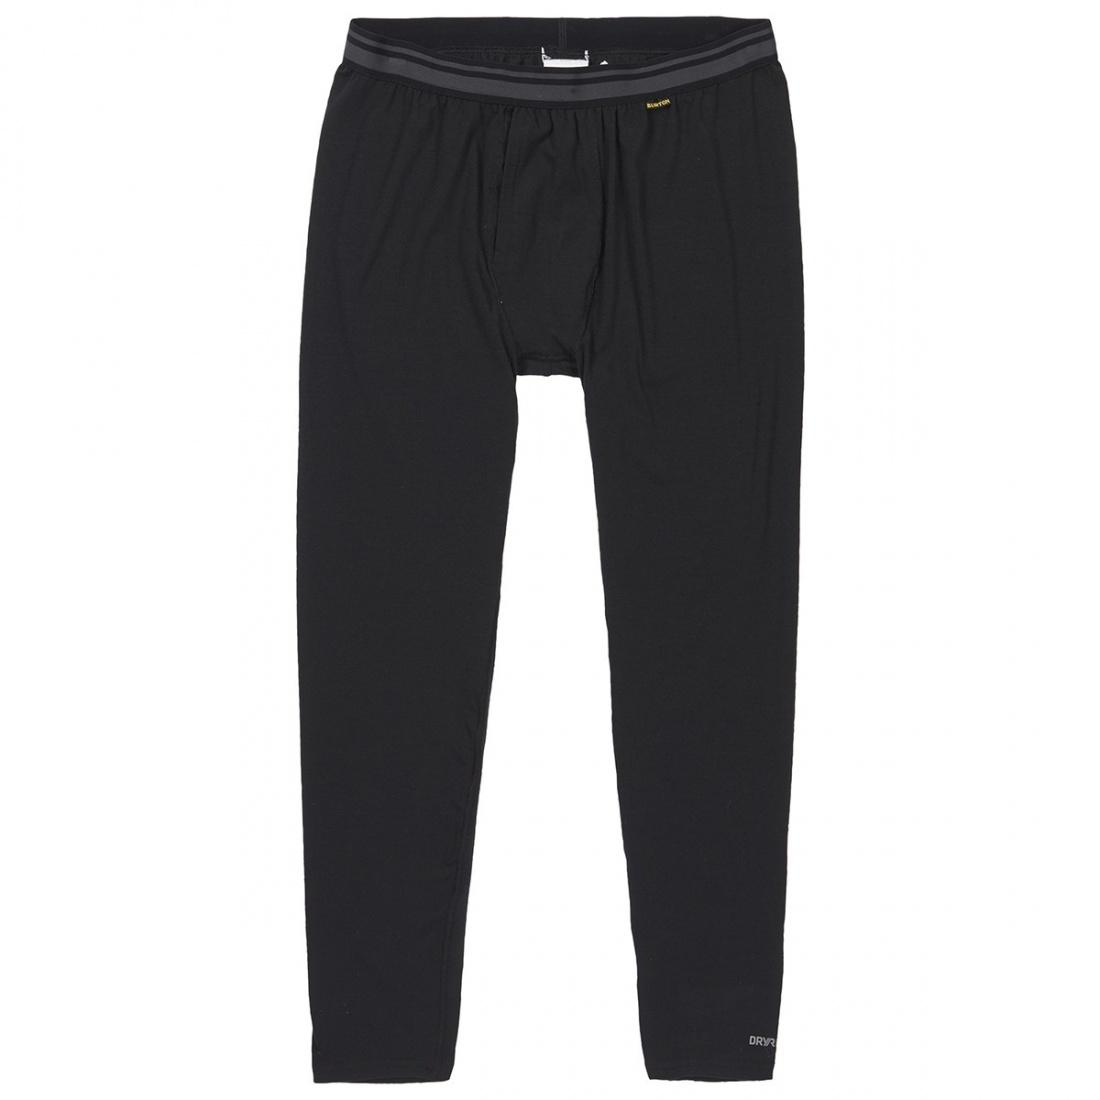 цены на Burton Термобелье Burton Midweight Base Layer Pant TRUE BLACK, , , FW18 L в интернет-магазинах